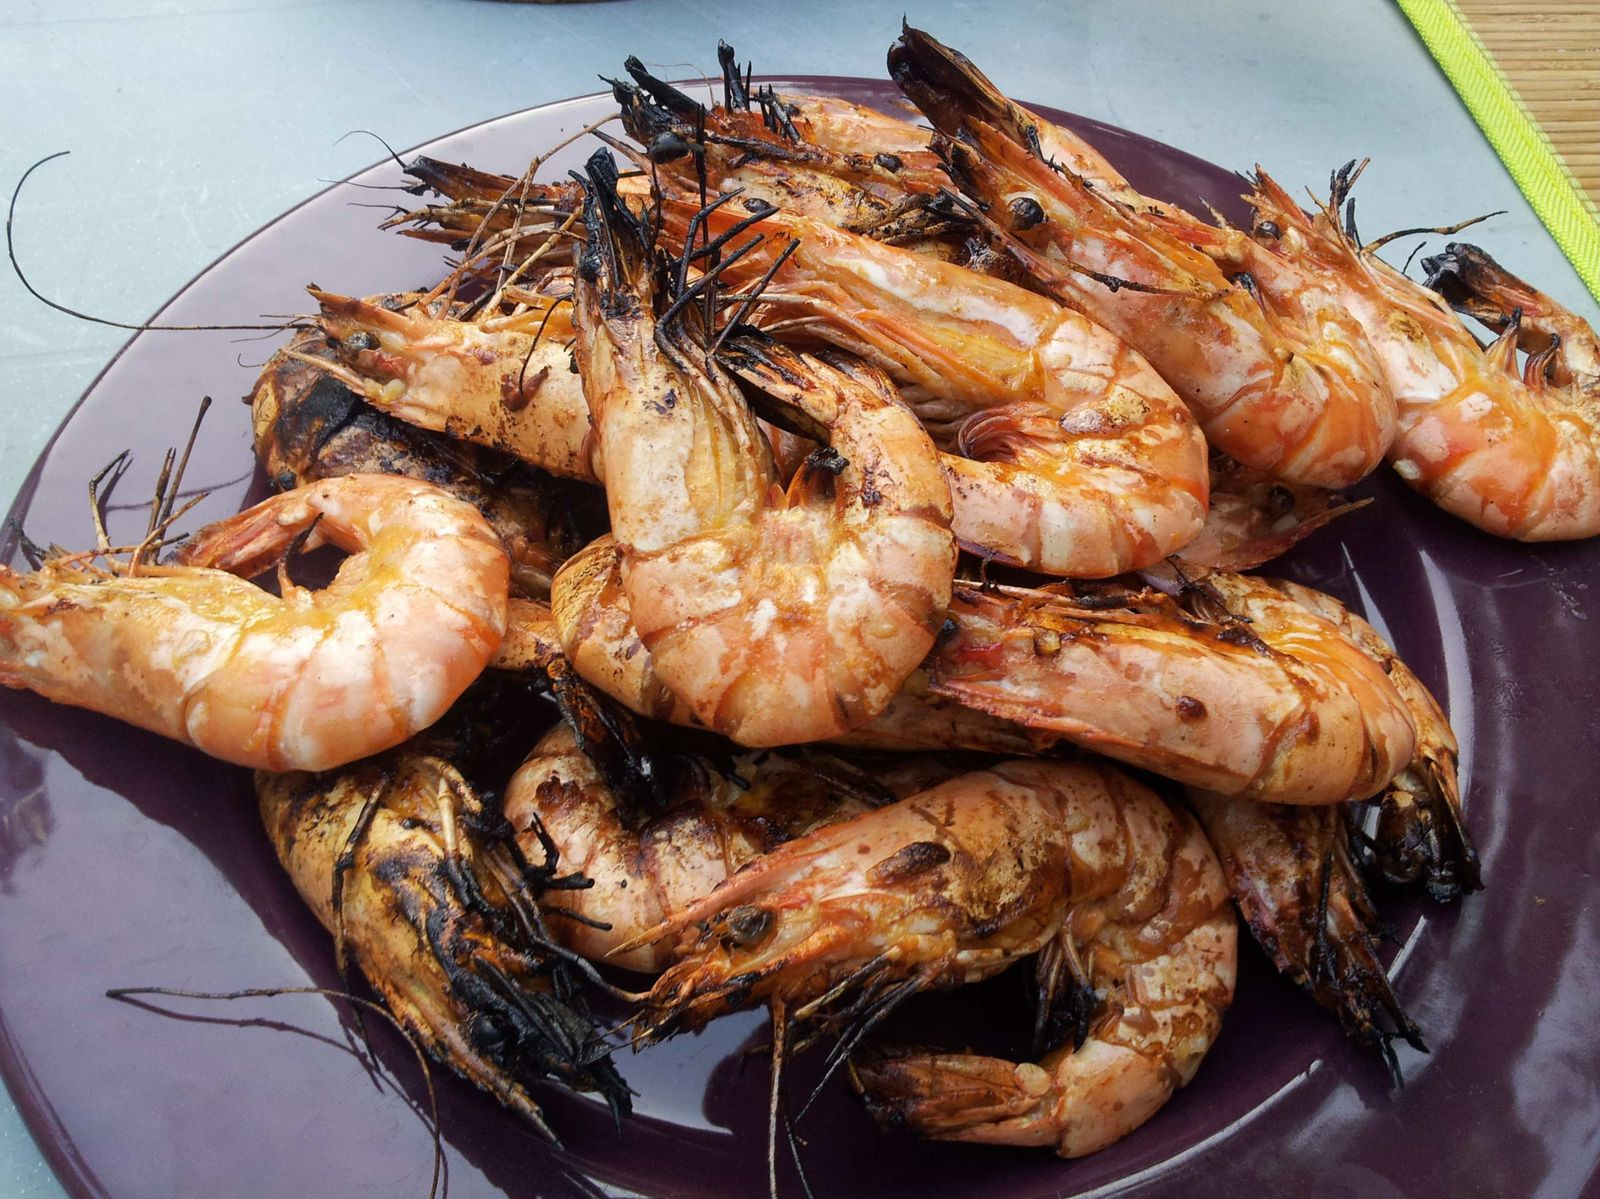 Crevettes grill es au barbecue avec marinade - Accompagnement gambas grillees ...